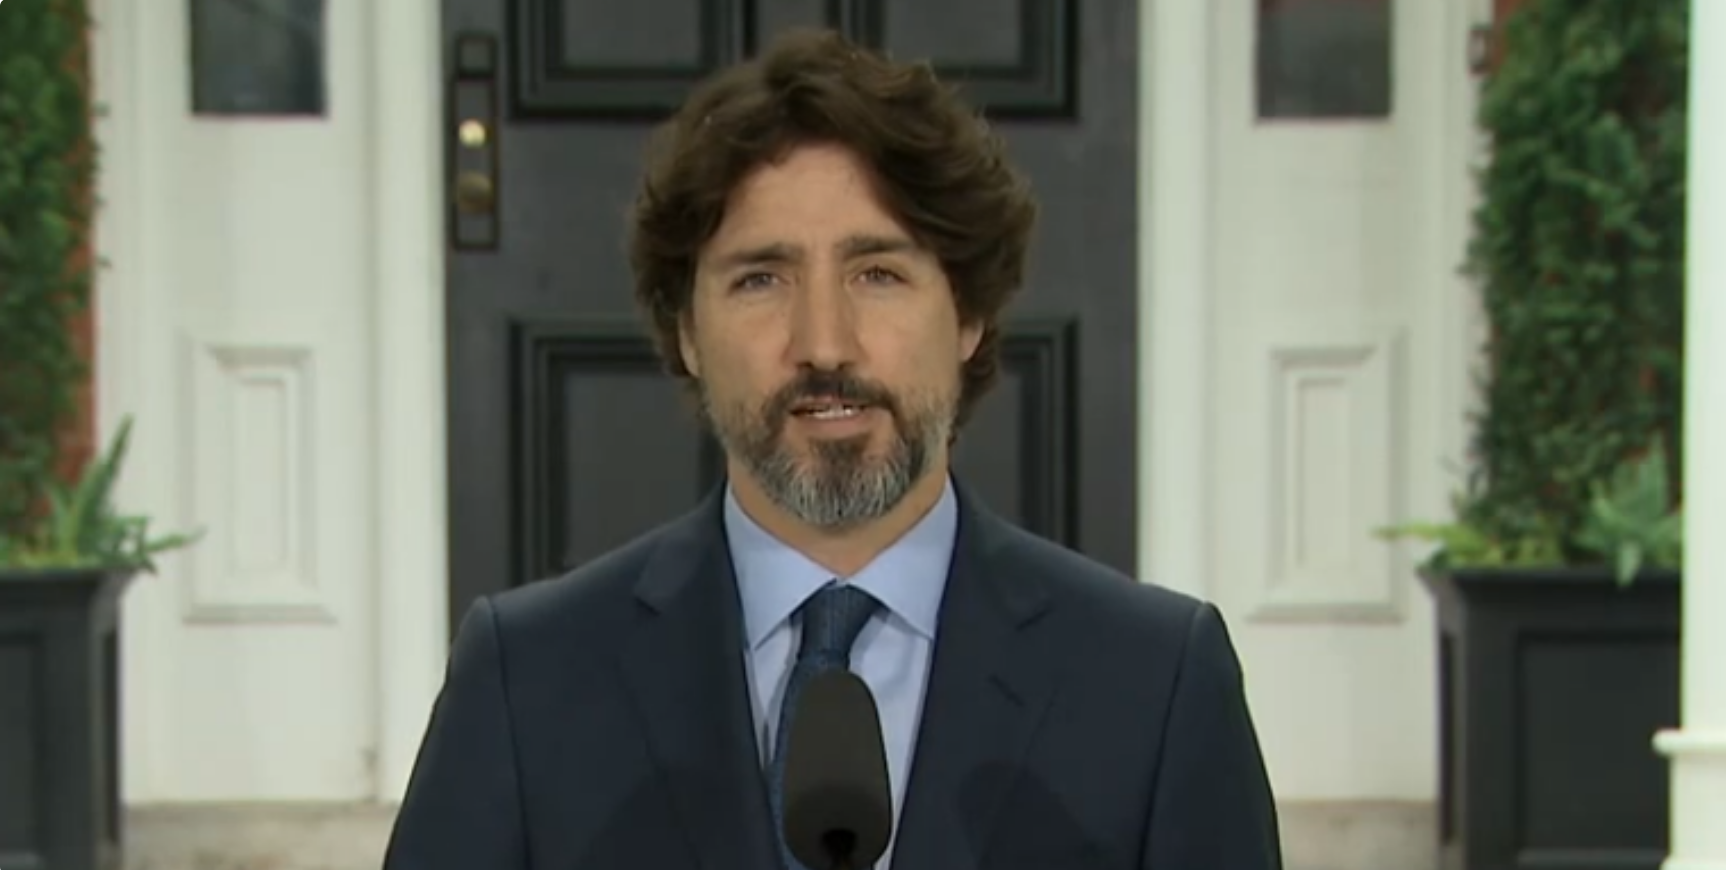 Trudeau's parliamentary power grab must be fought